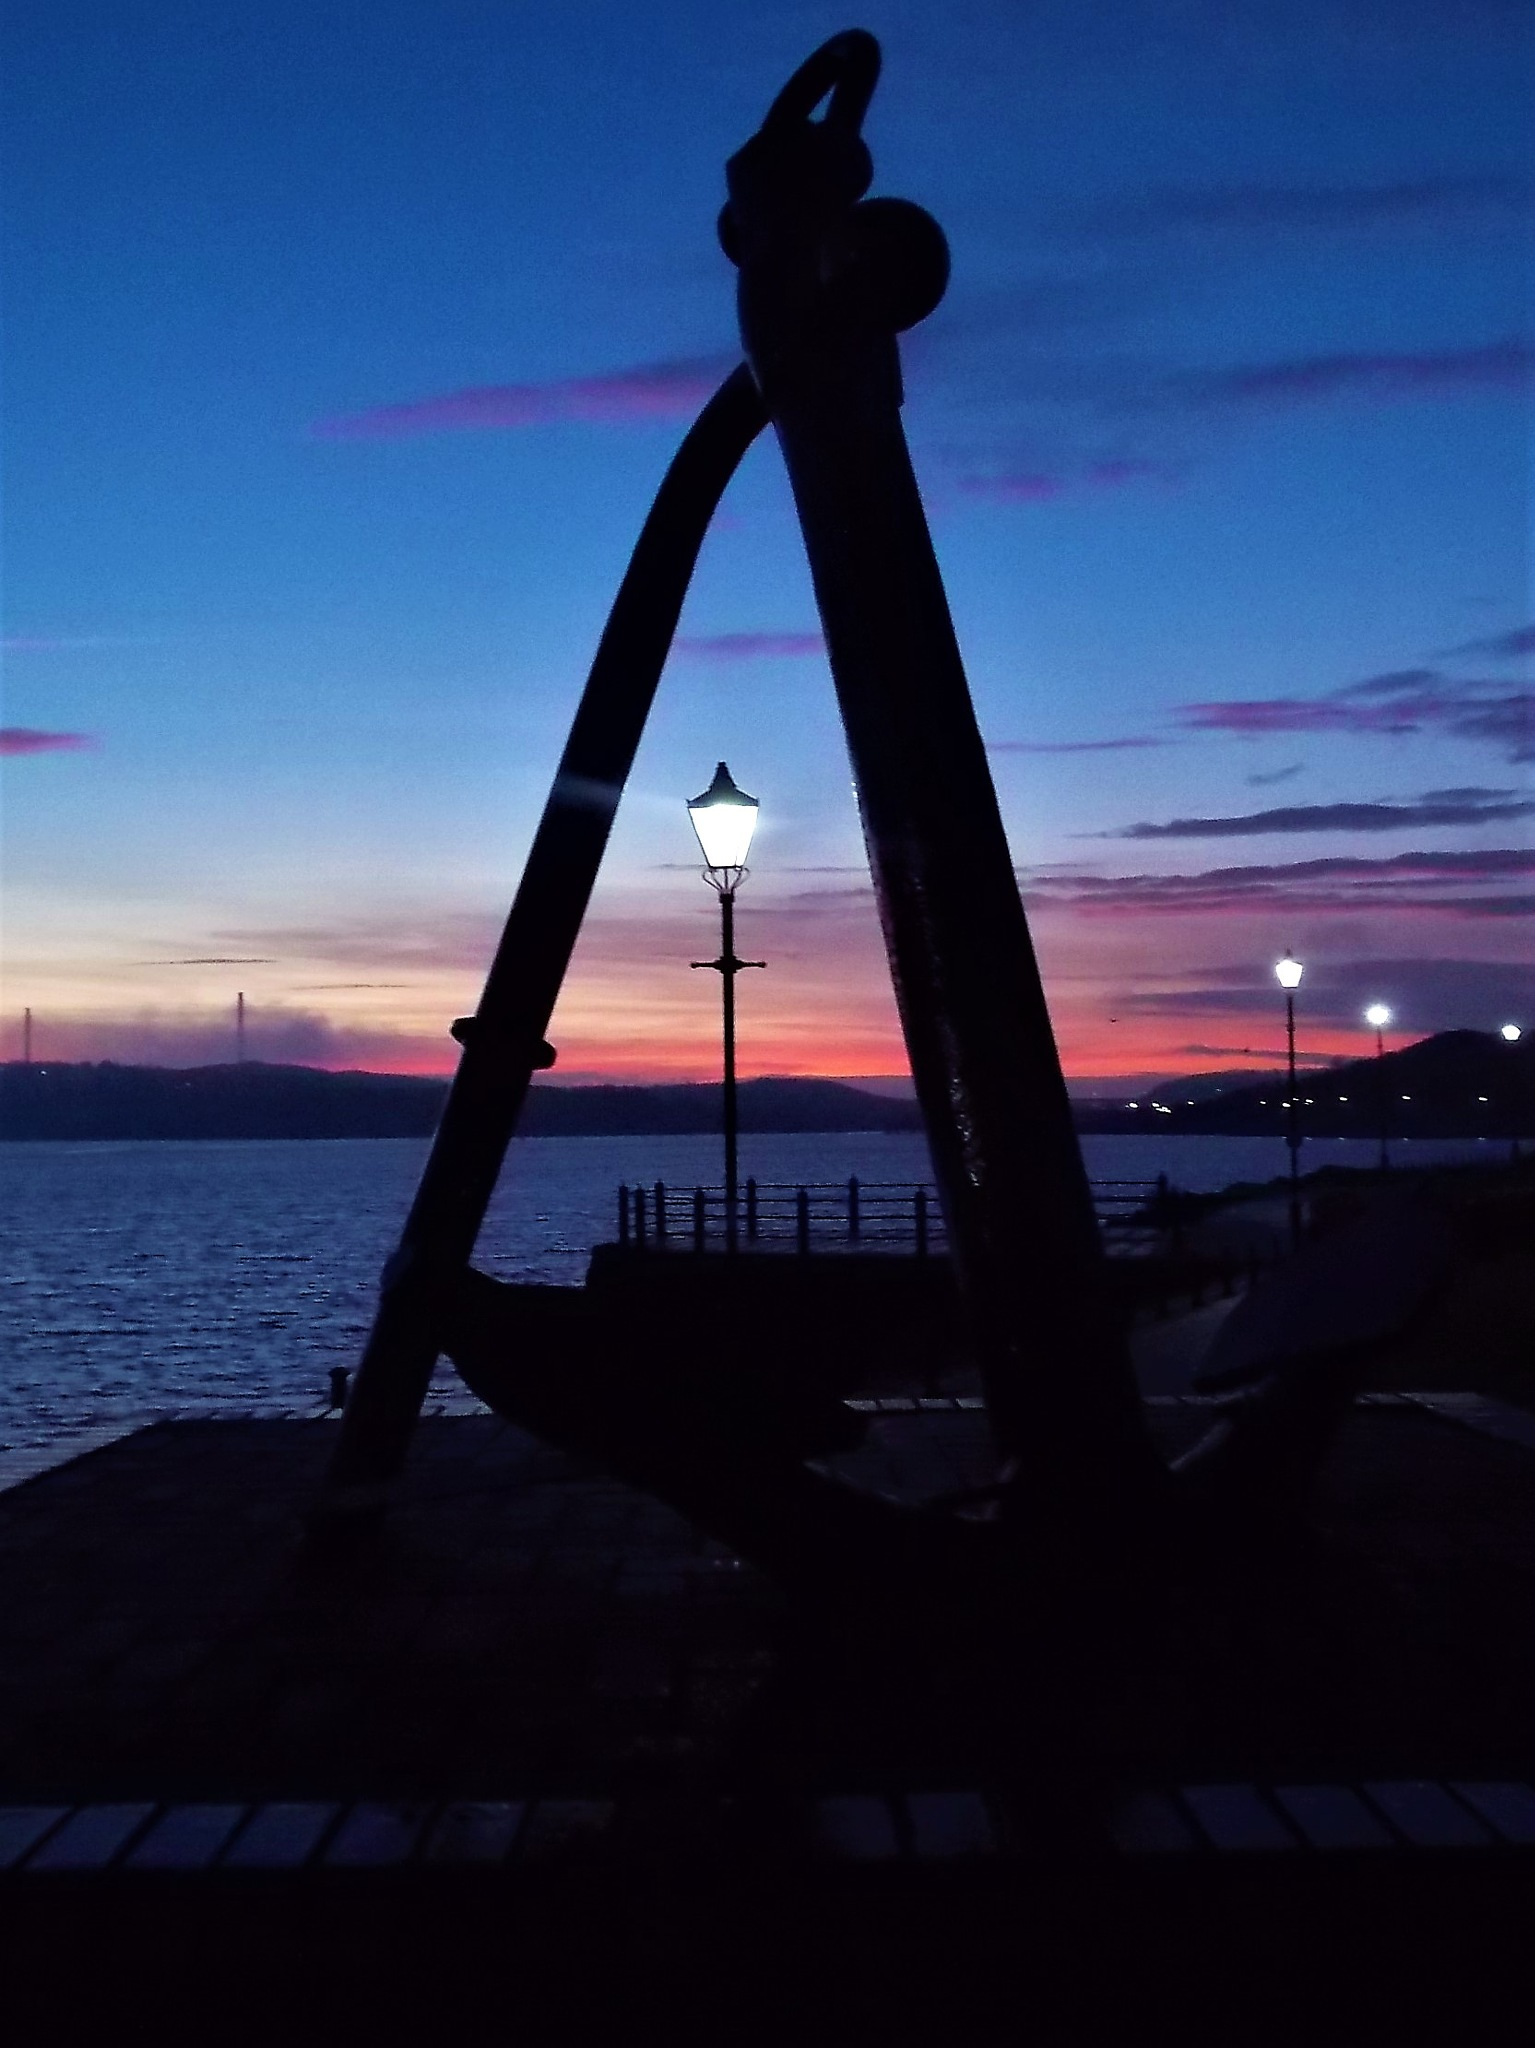 """Streetlamps and Anchor"" by Thania Wehmeyer"